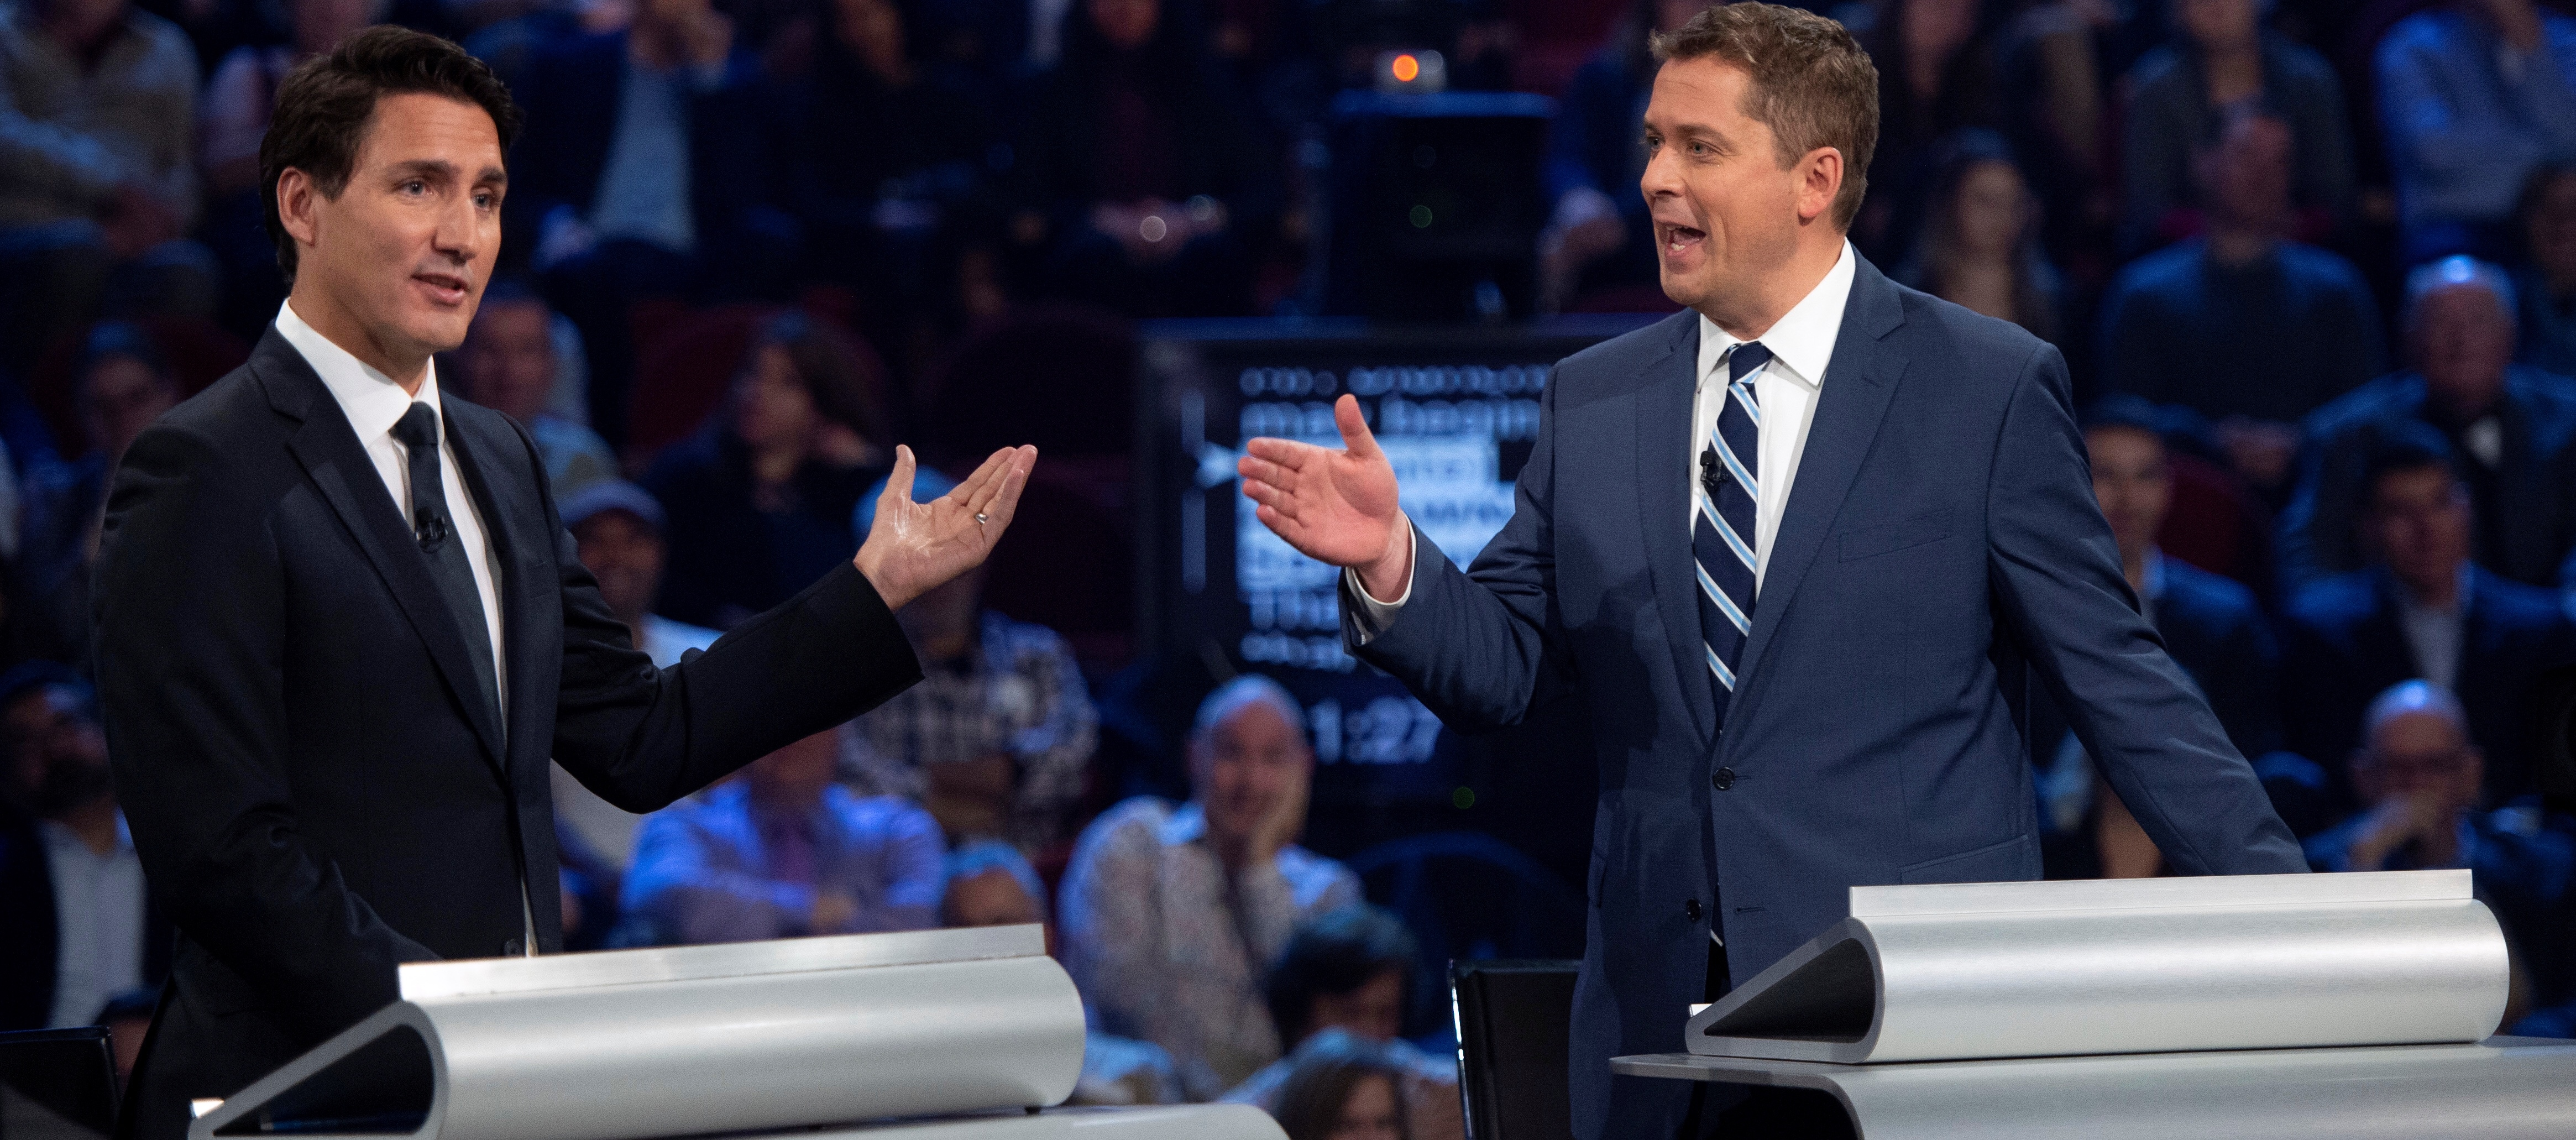 Liberal leader Justin Trudeau and Conservative leader Andrew Scheer debate a point during the Federal leaders debate in Gatineau, Quebec, Canada October 7, 2019. Picture taken October 7, 2019. Sean Kilpatrick/Pool via REUTERS